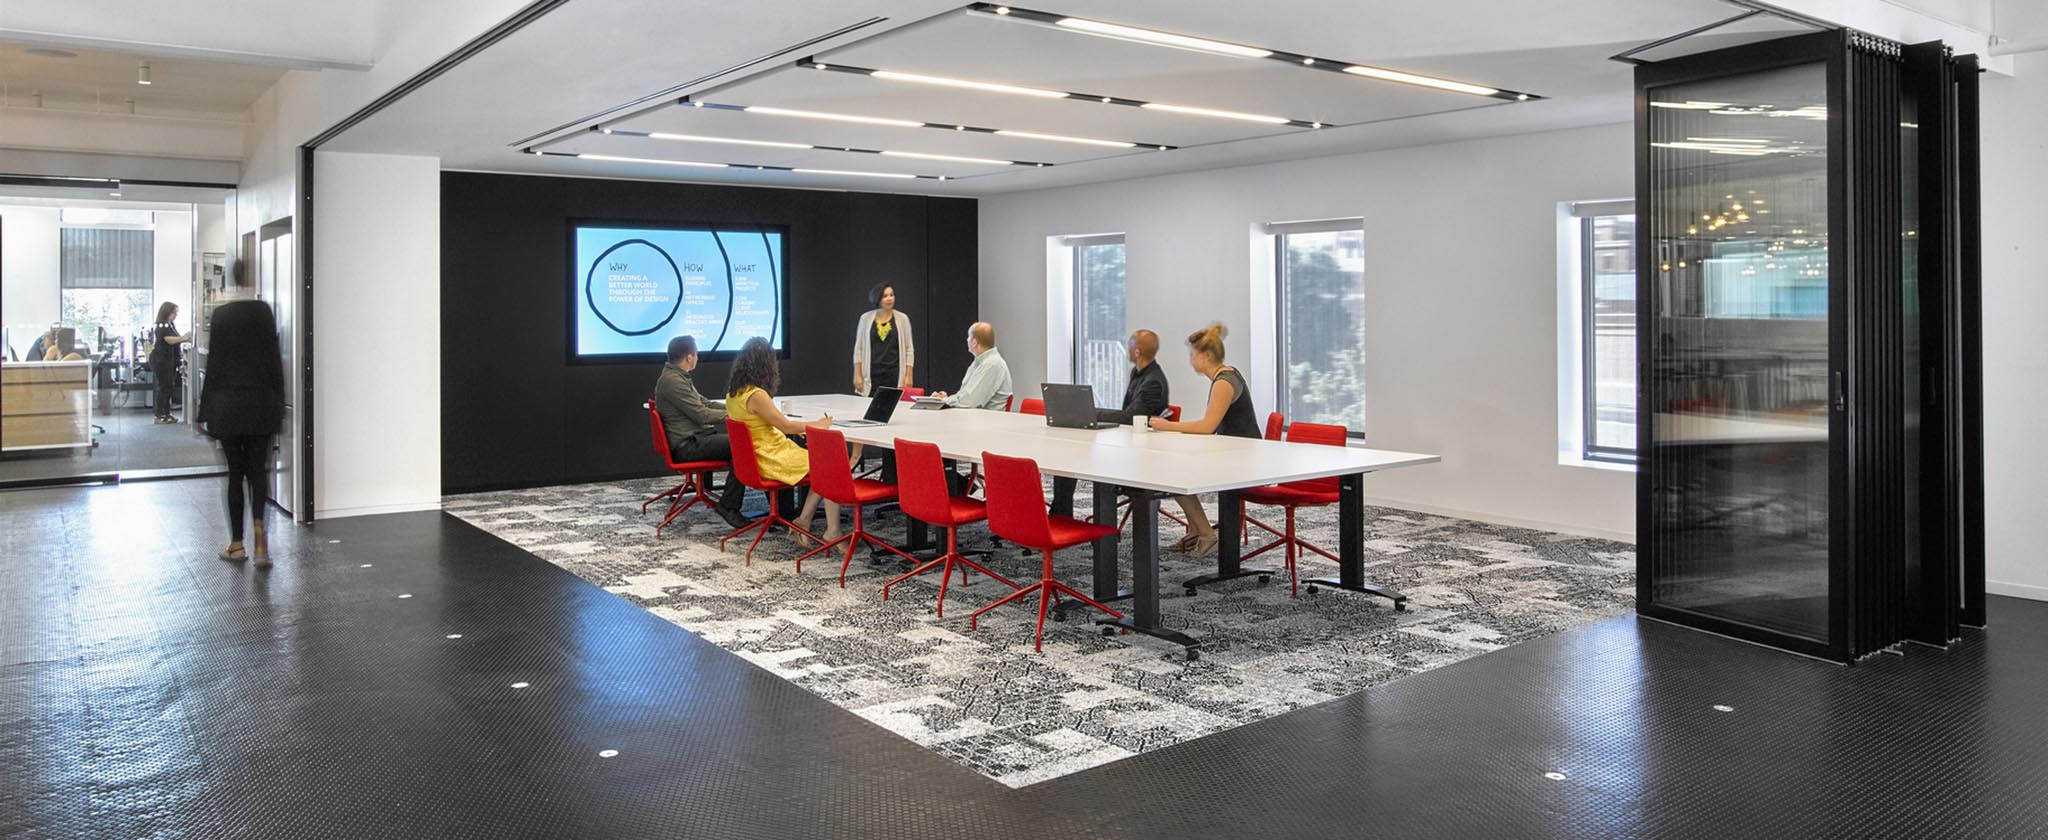 flexible conference room for office interiors with sliding interior glass wall